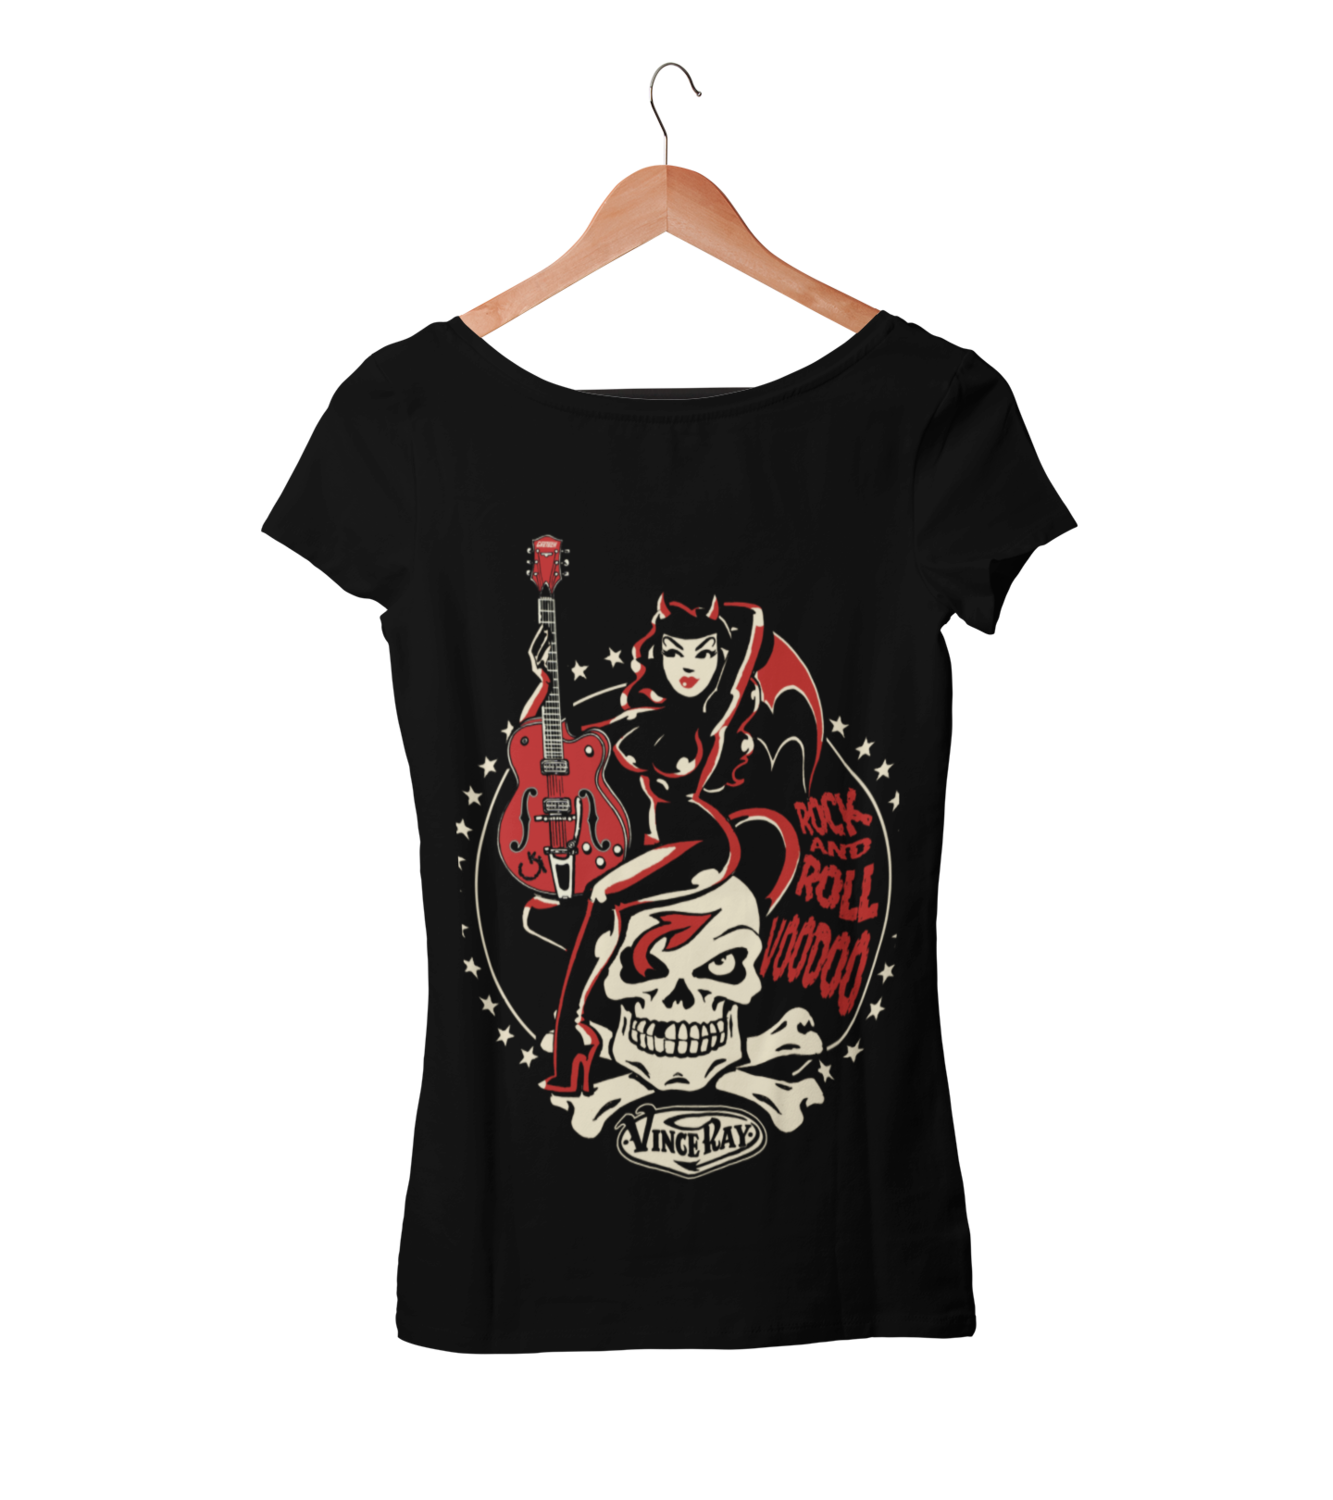 ROCK AND ROLL VOODOO T-SHIRT WOMAN by VINCE RAY